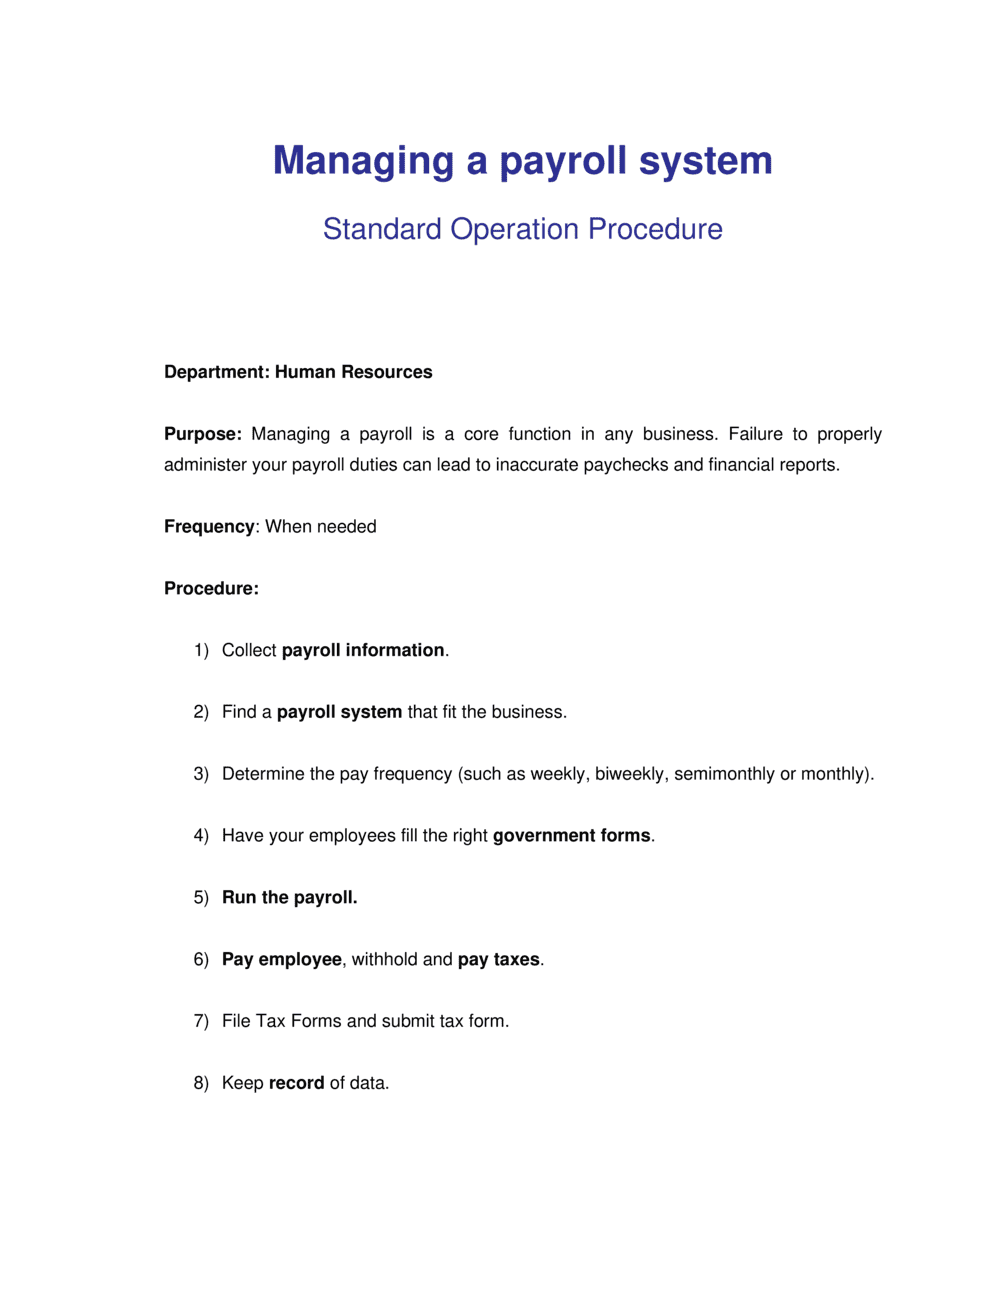 Business-in-a-Box's How to Manage a Payroll System